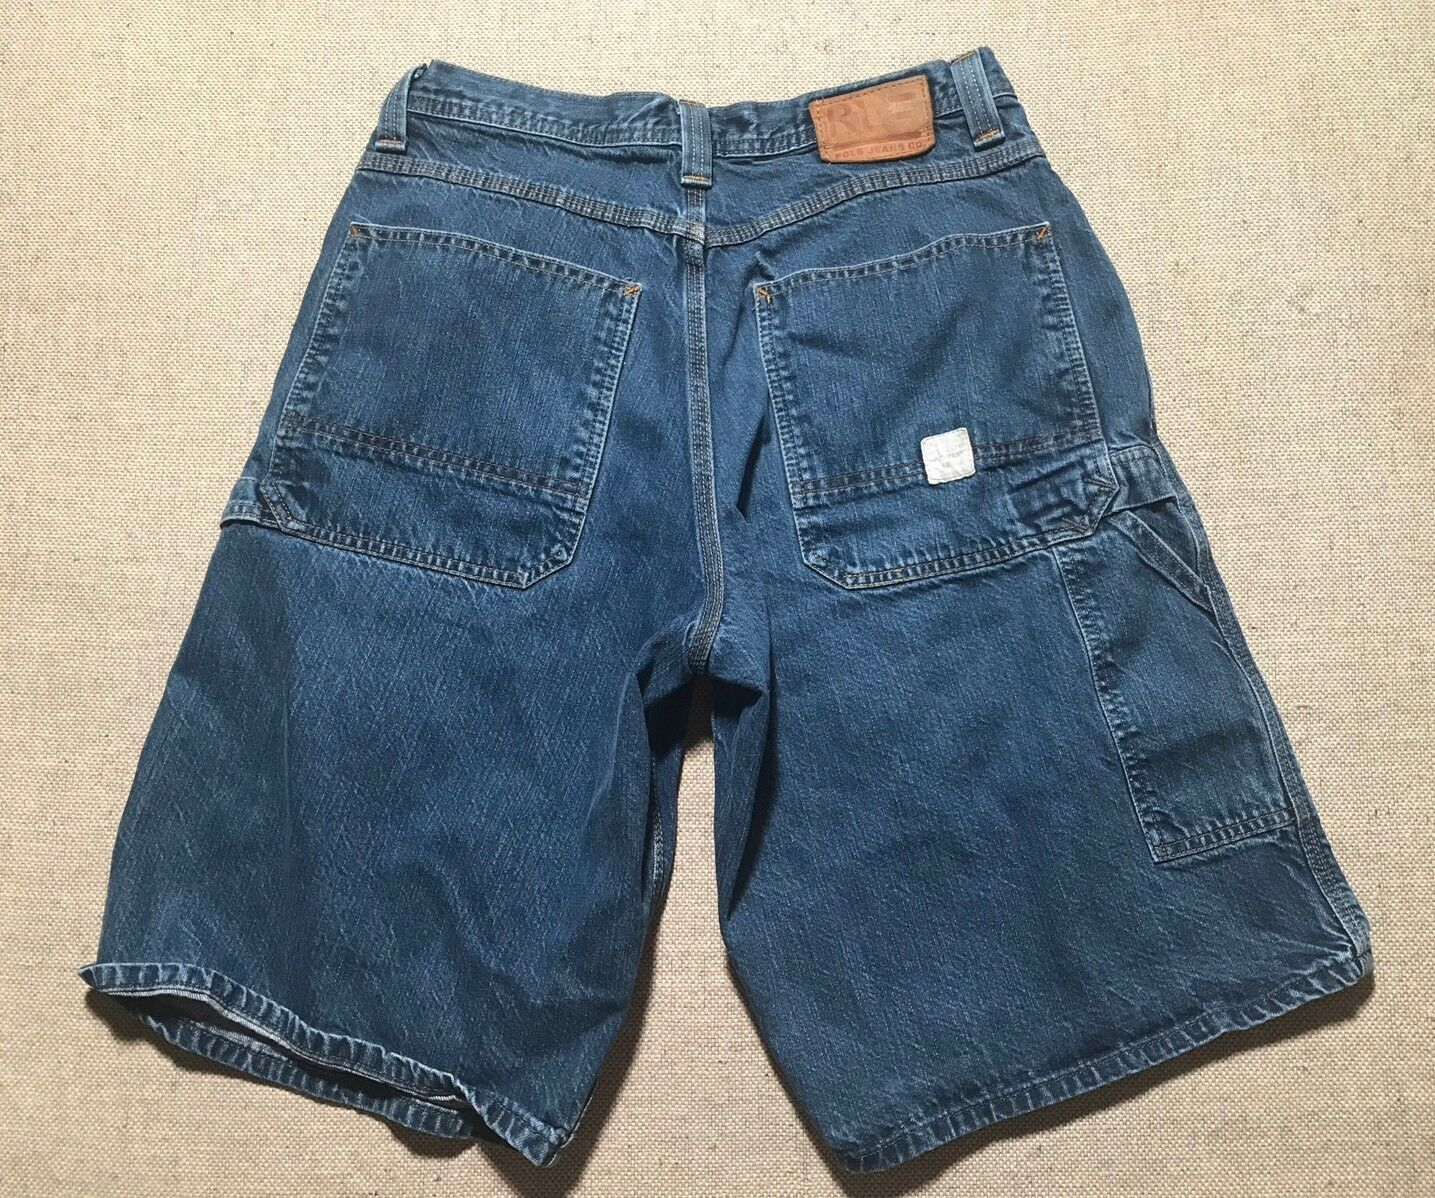 VTG RL POLO JEANS CO. Ralph Lauren bluee Denim Carpenter Shorts Size 34  J4